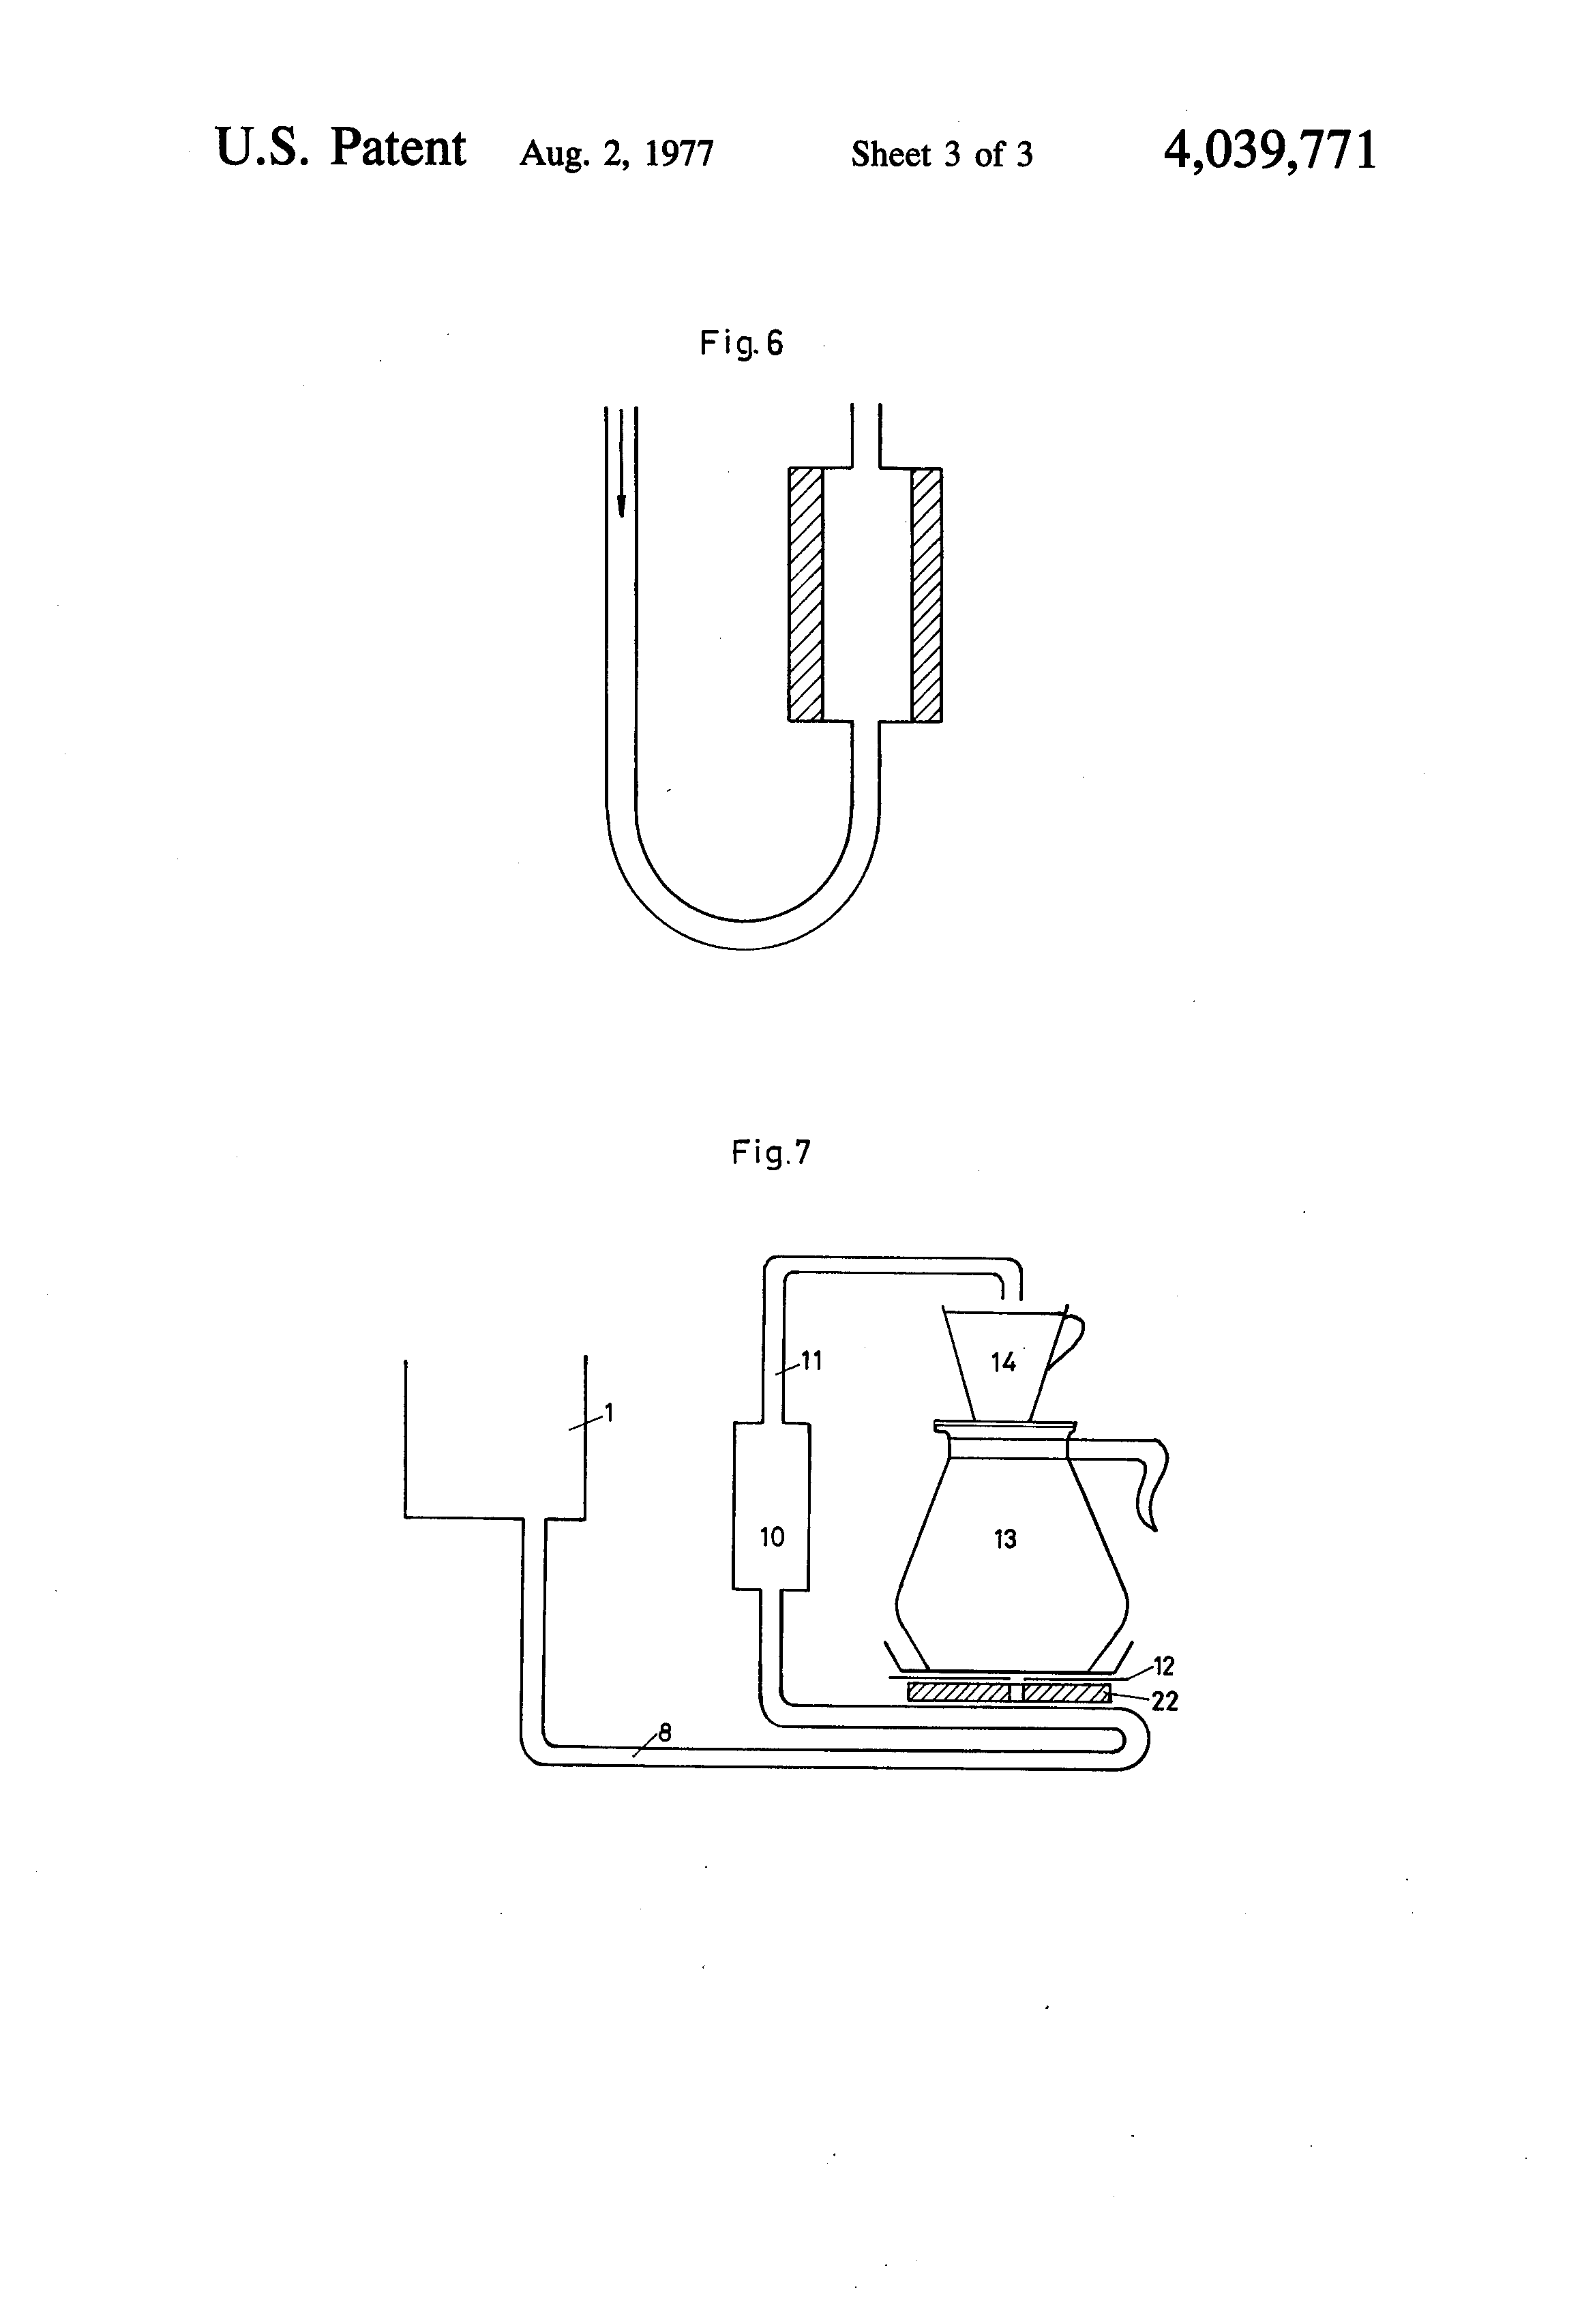 A Coffee Maker Contains A Heating Element That Has A Resistance Of : Brevet US4039771 - Coffee maker - Google Brevets